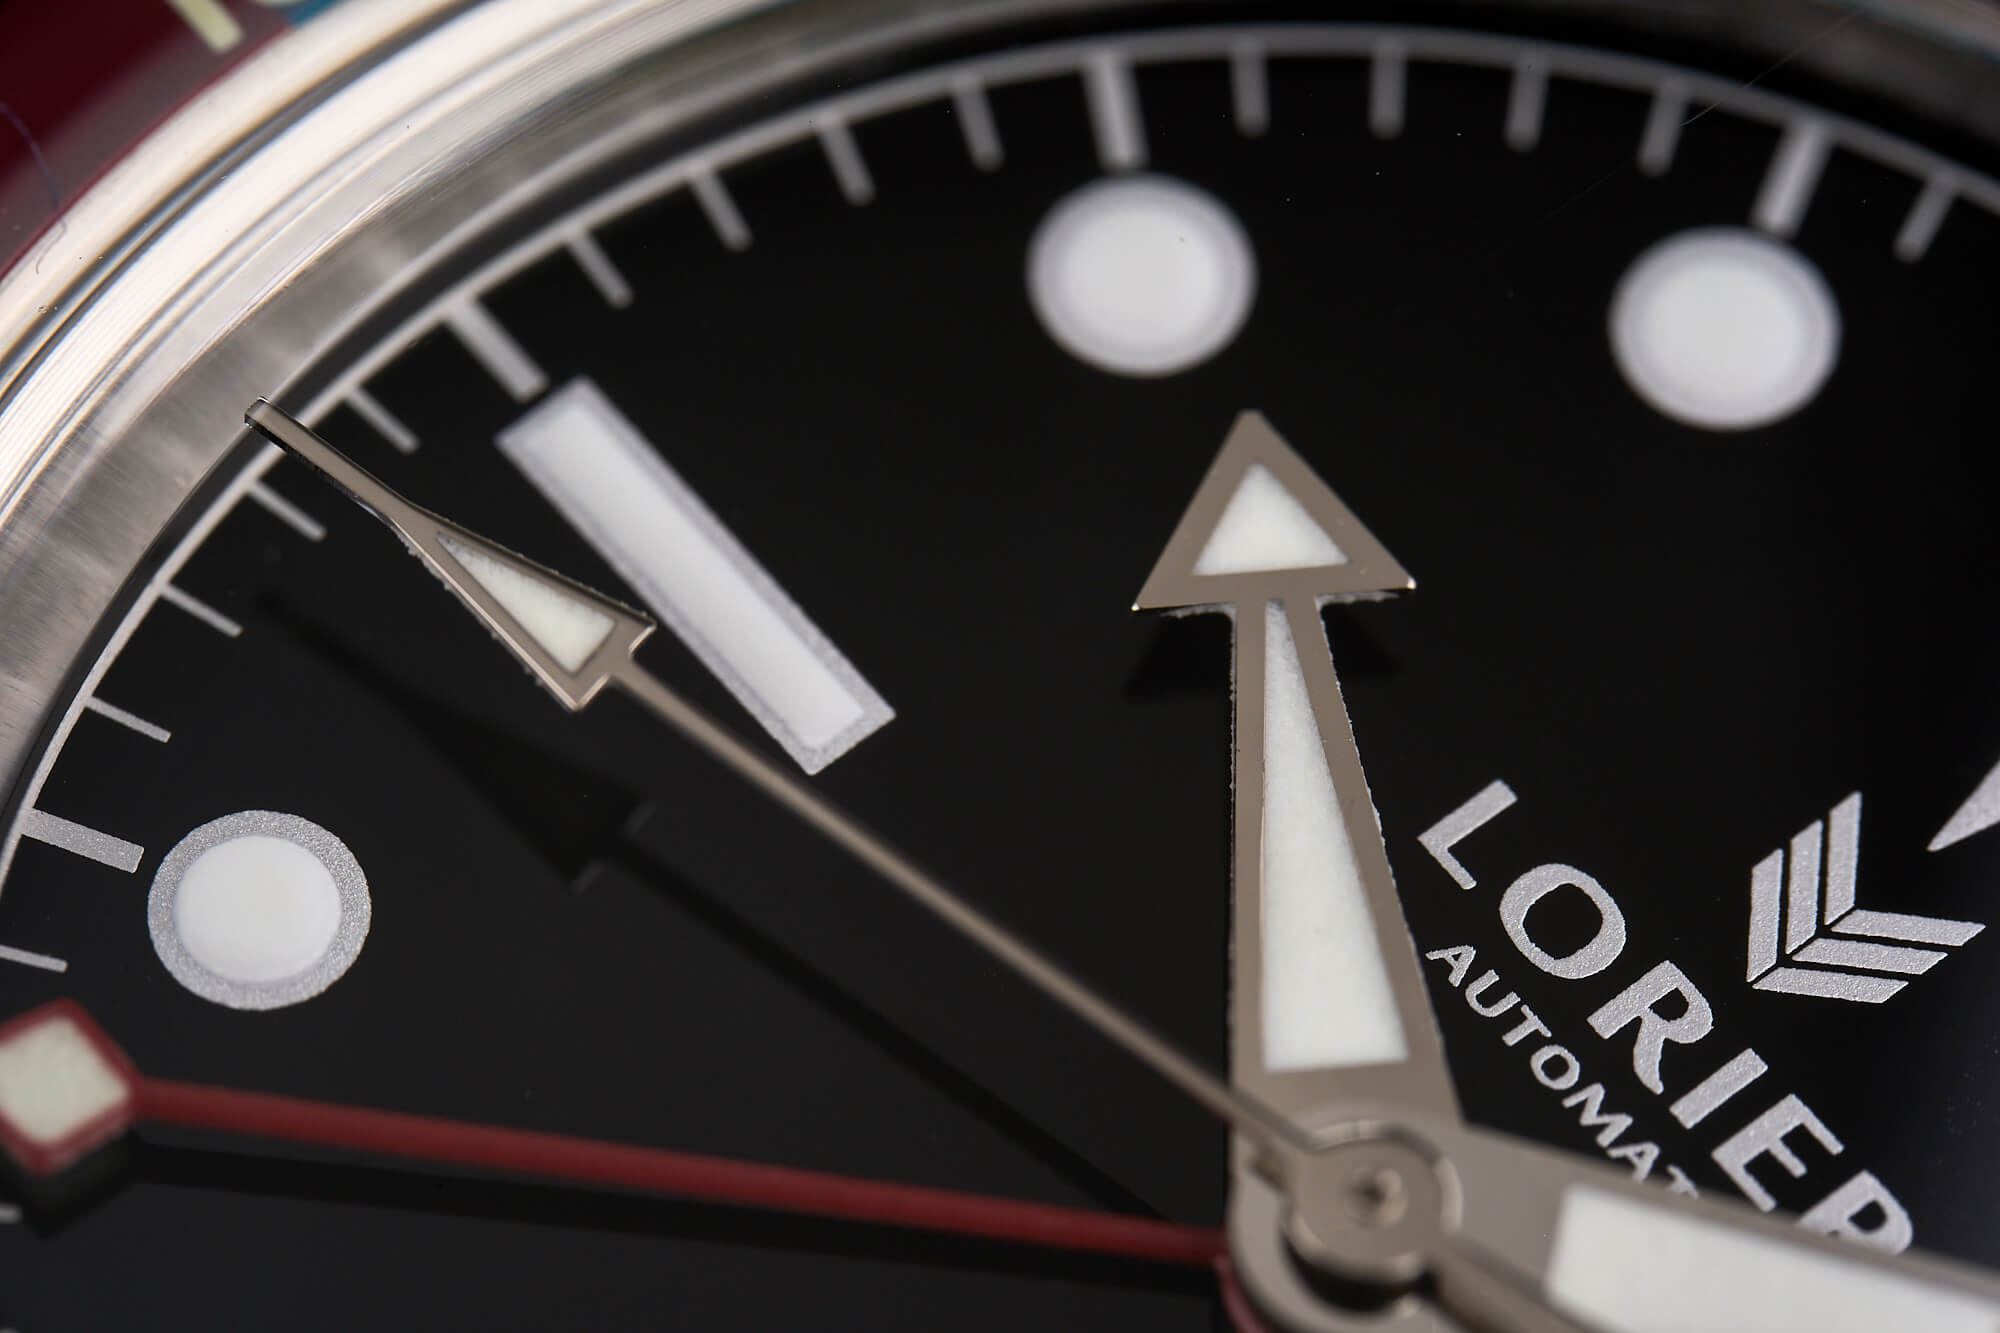 lorier-hyperion-gmt-22